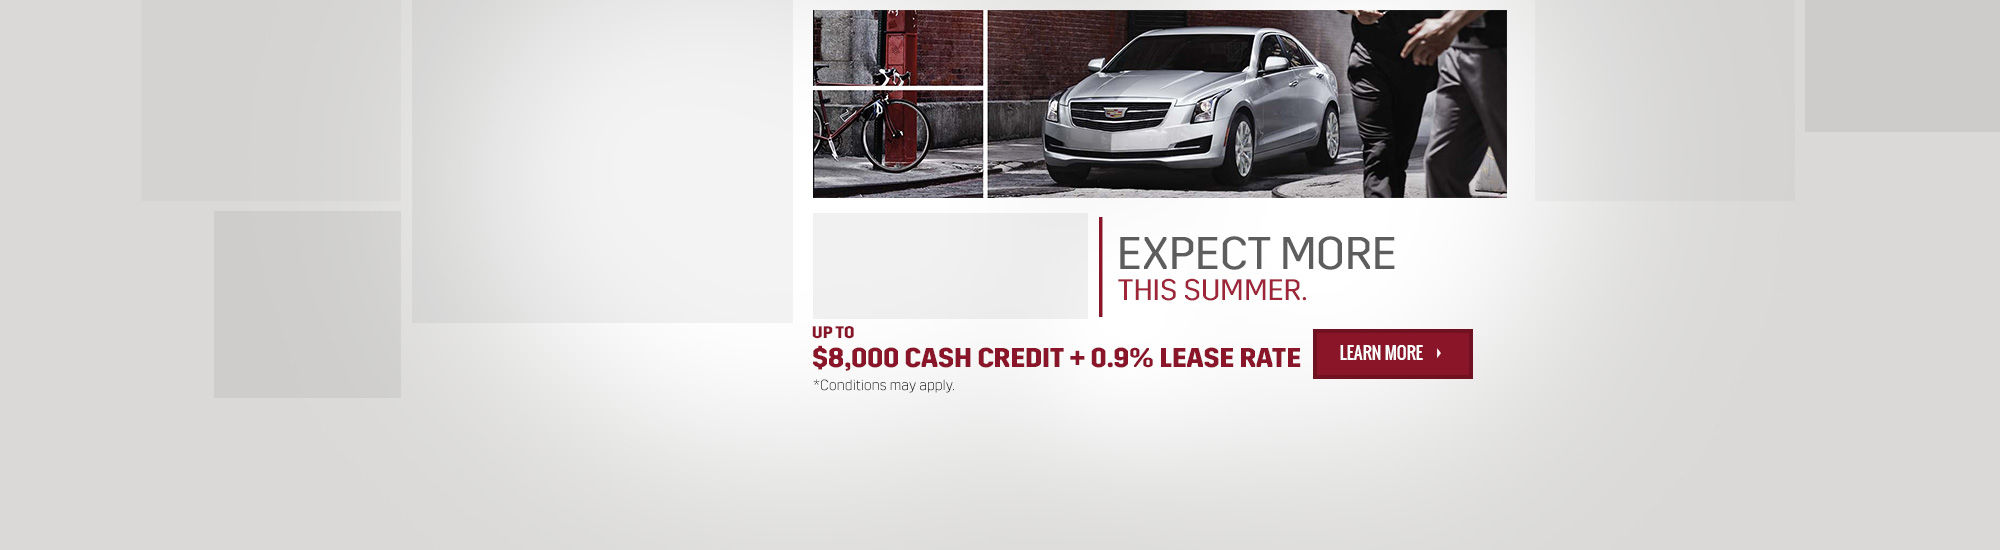 Cadillac - Expect more this summer